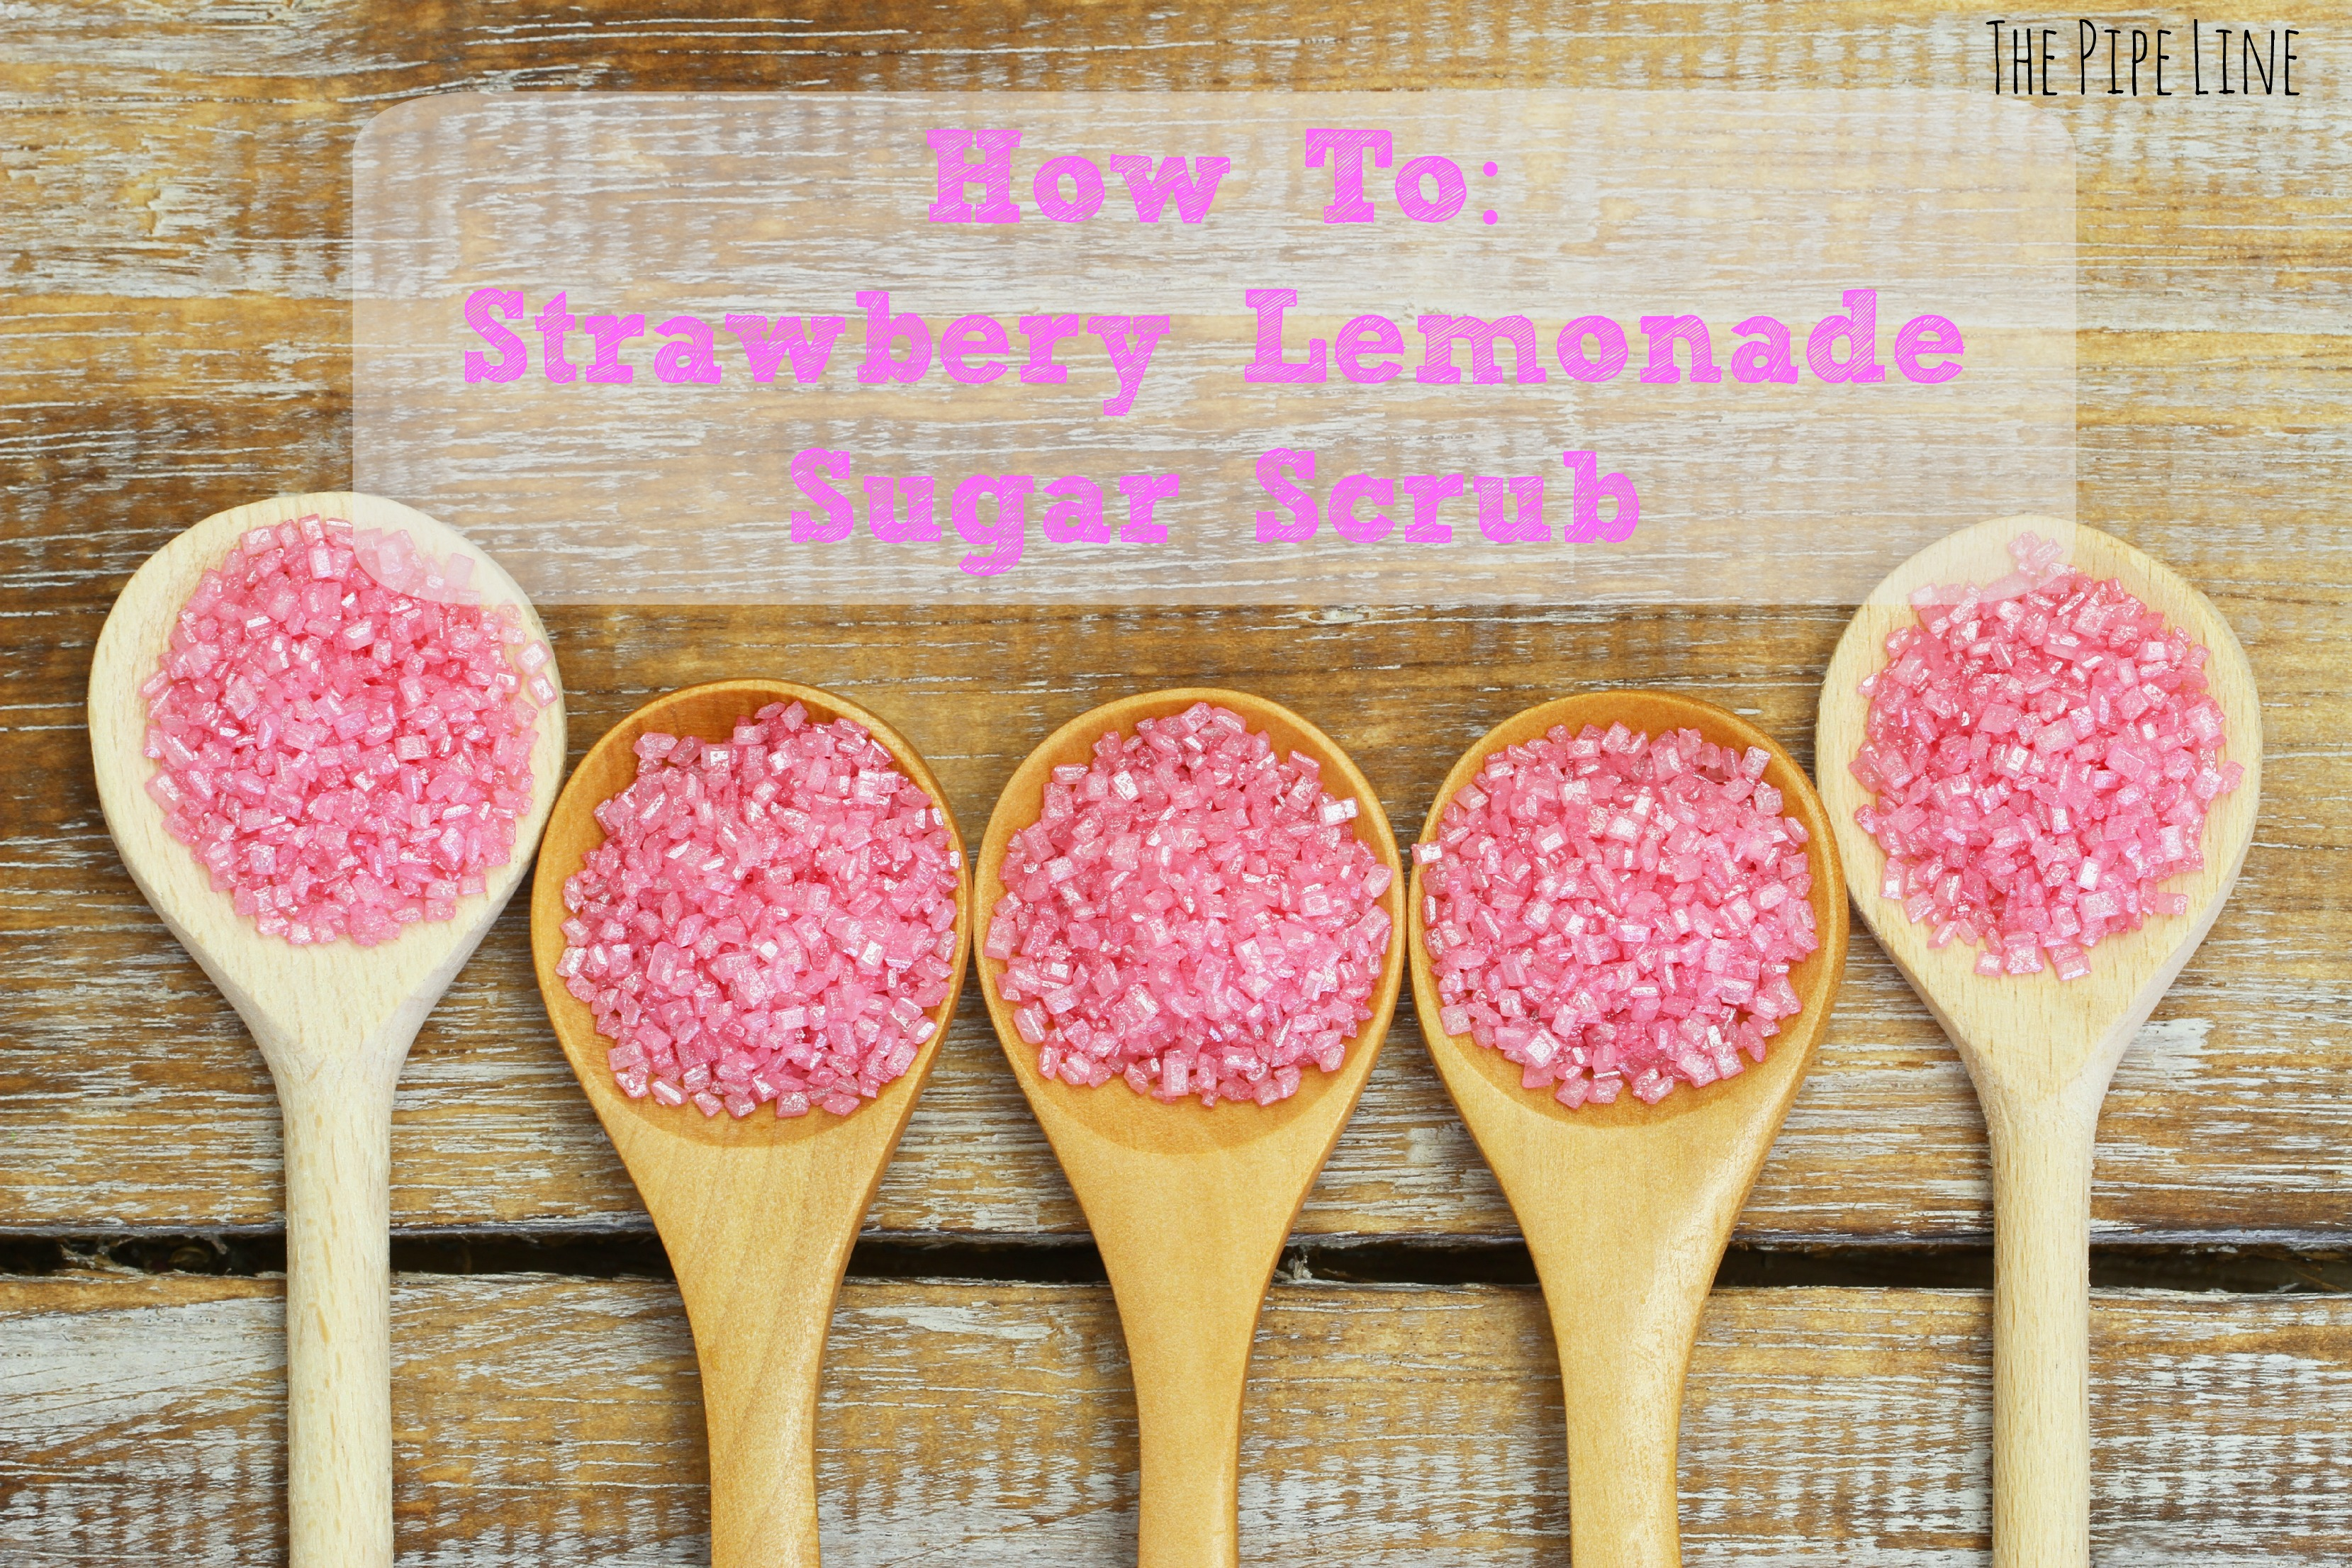 HOW TO: STRAWBERRY LEMONADE SU...